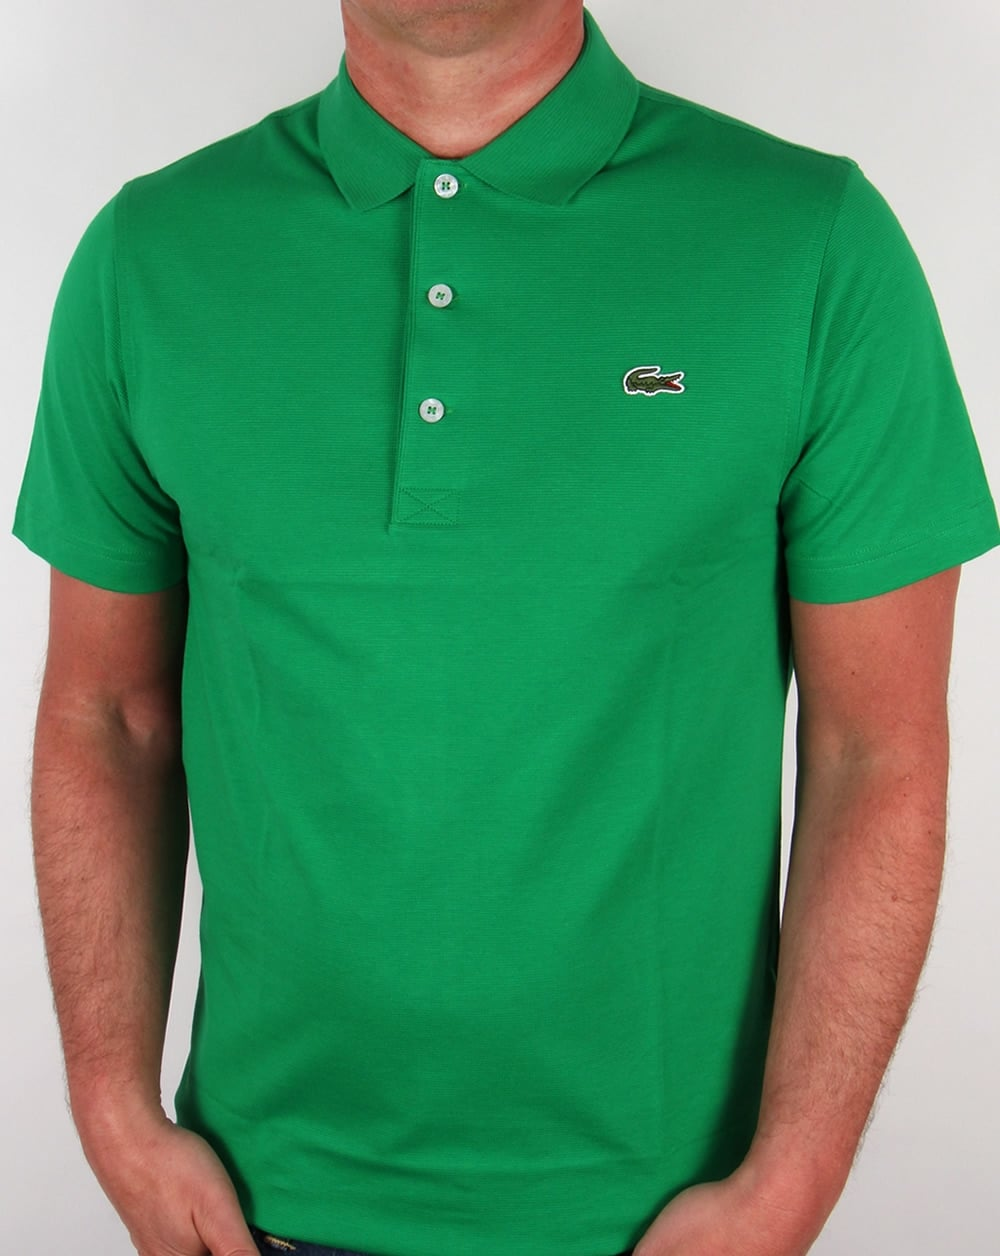 Lacoste polo shirt green field fresh short sleeve sport for Order company polo shirts